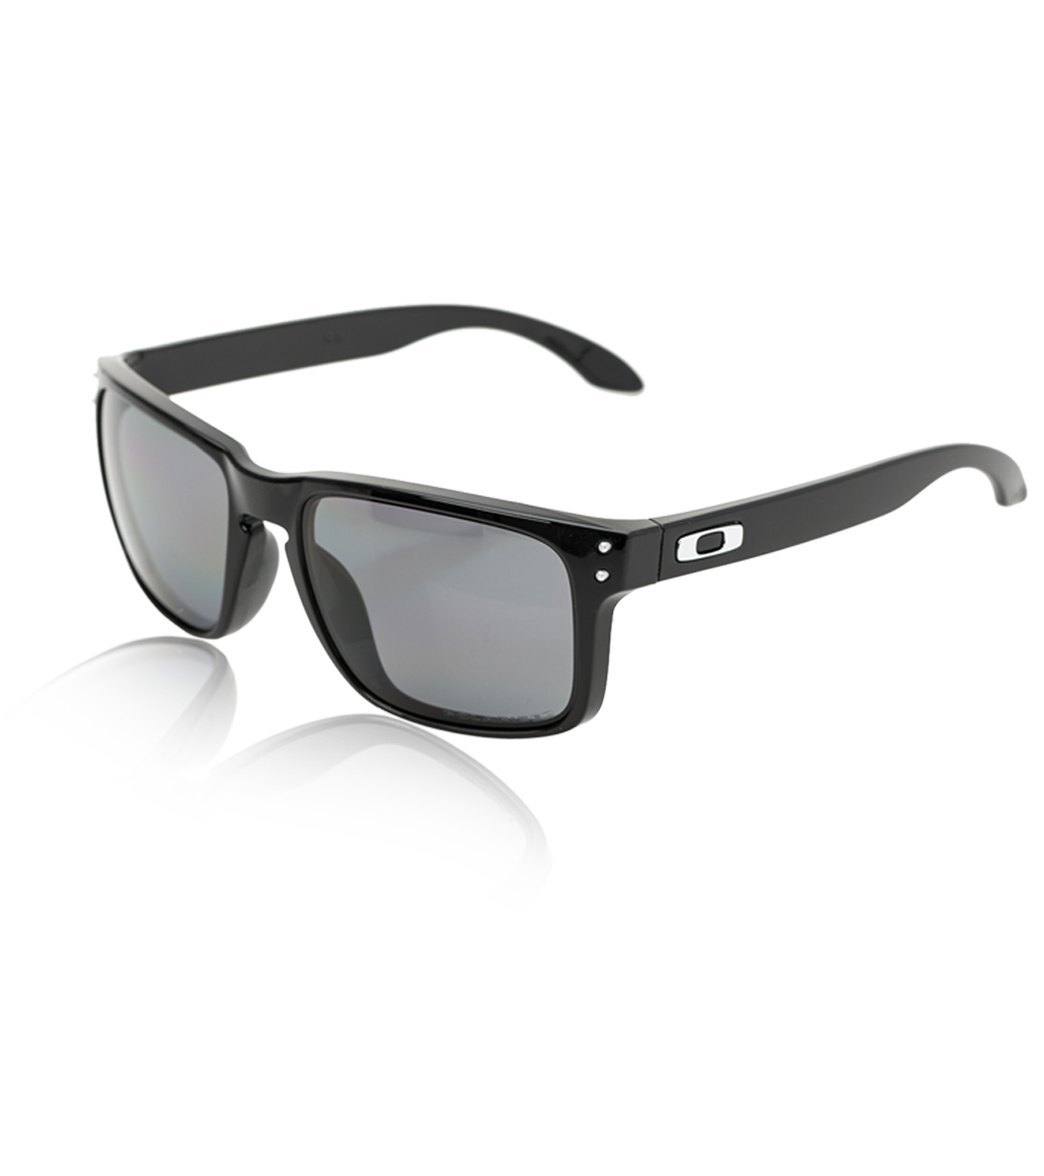 7a0b79a9670d8 Oakley Holbrook Polarized Sunglasses at SwimOutlet.com - Free ...